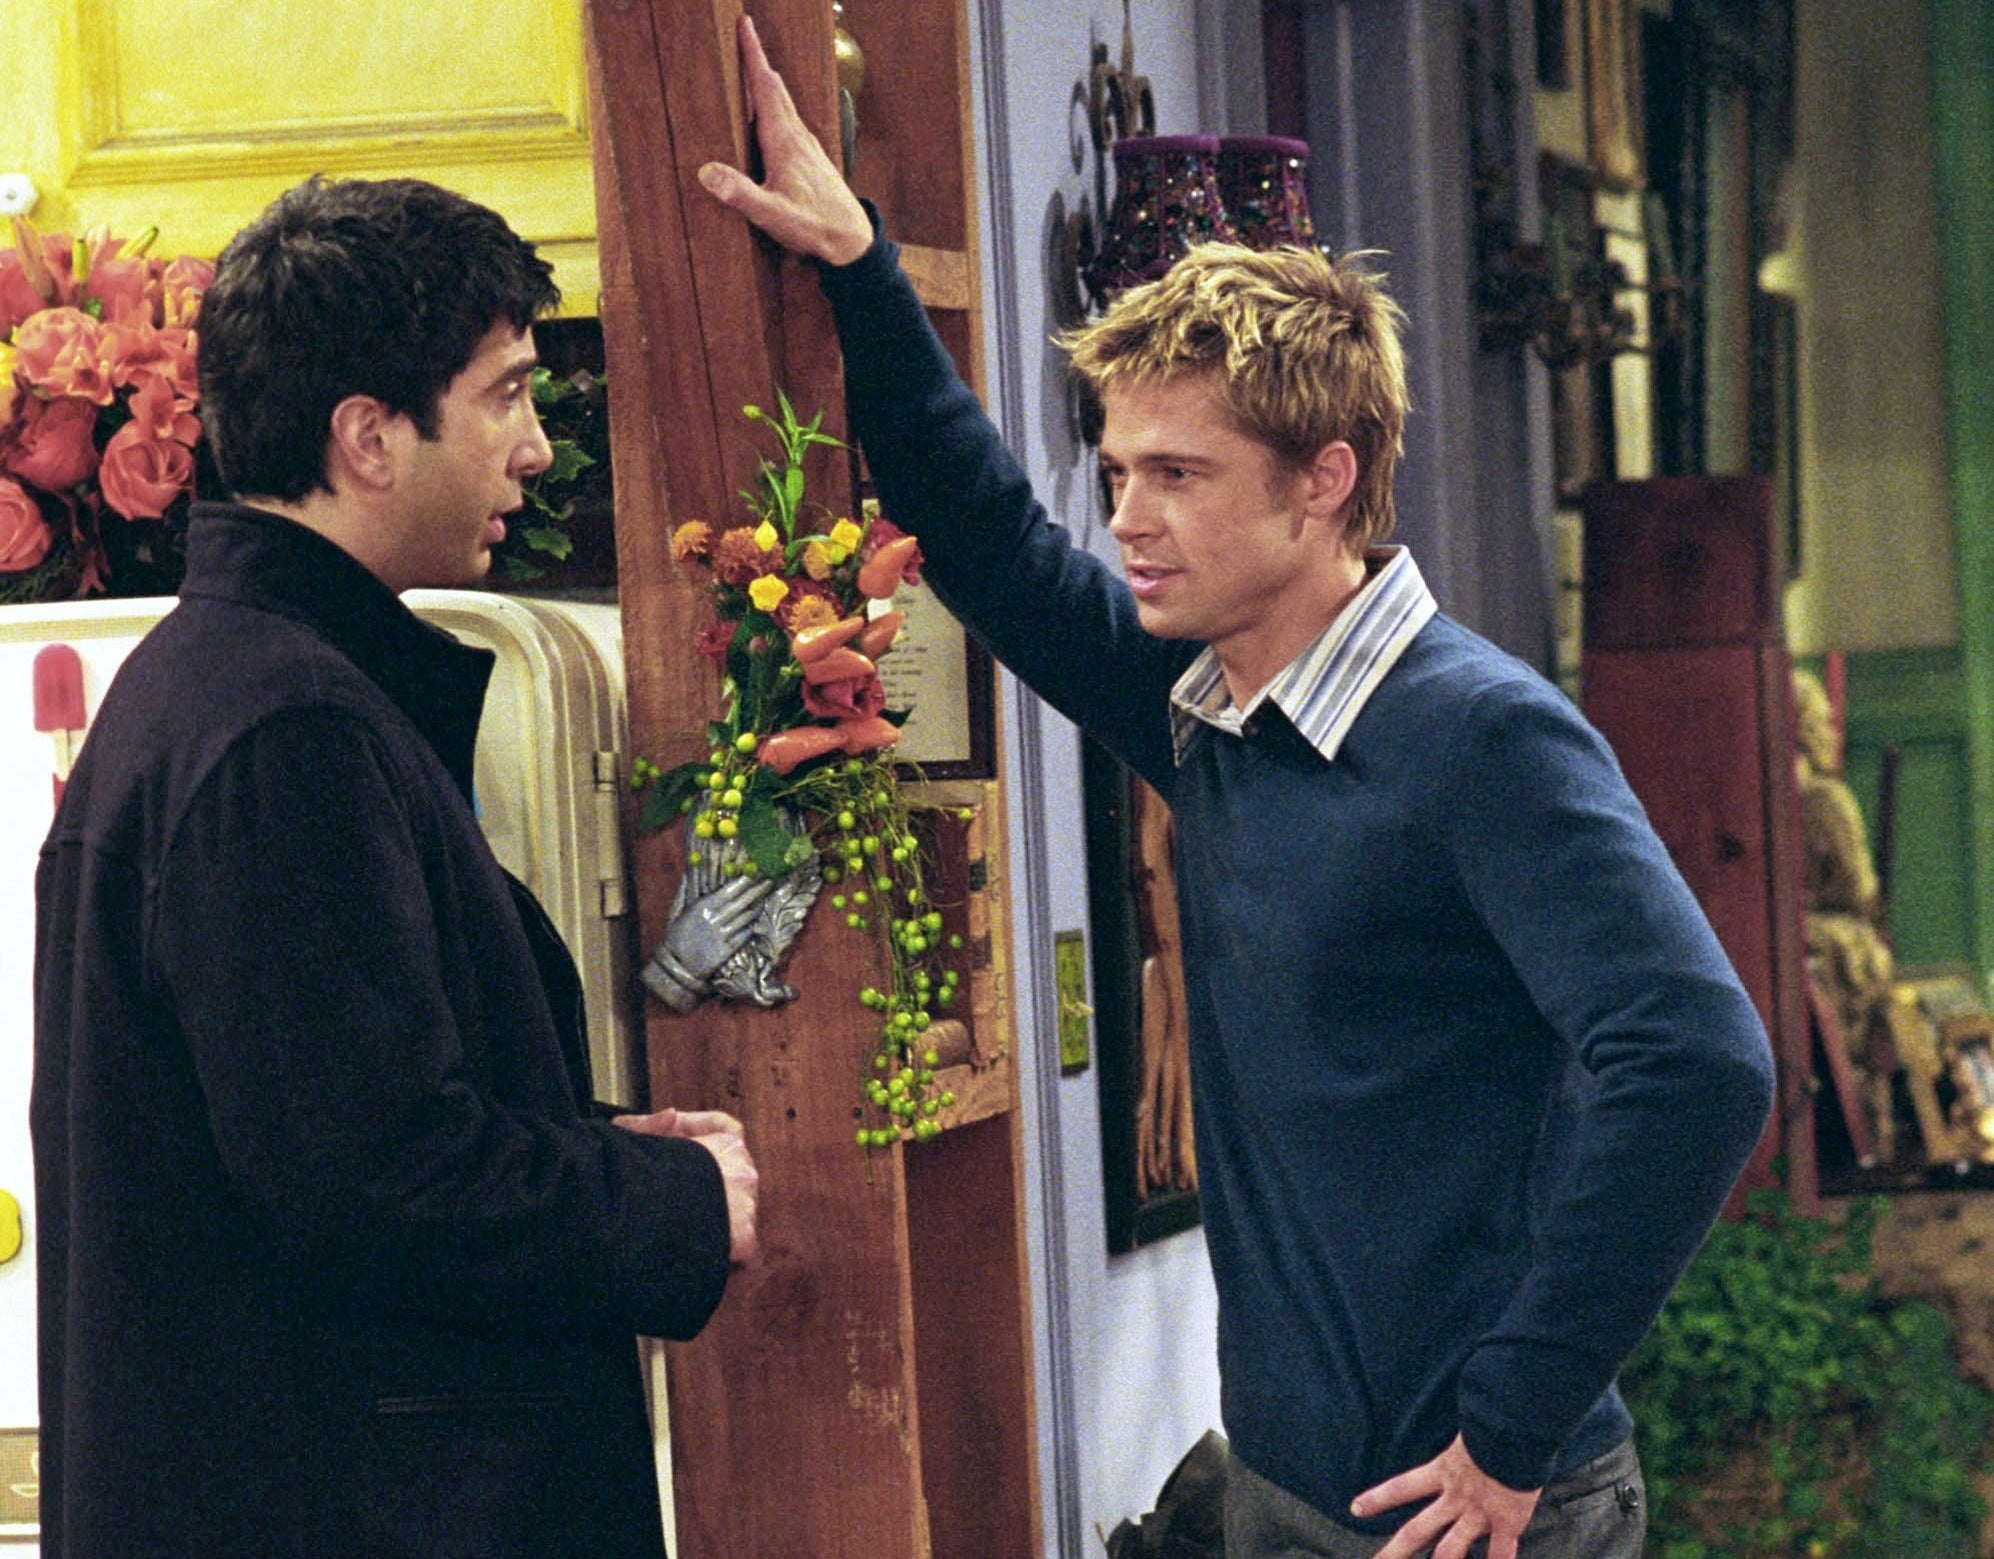 Brad's character and Ross chat during the episode